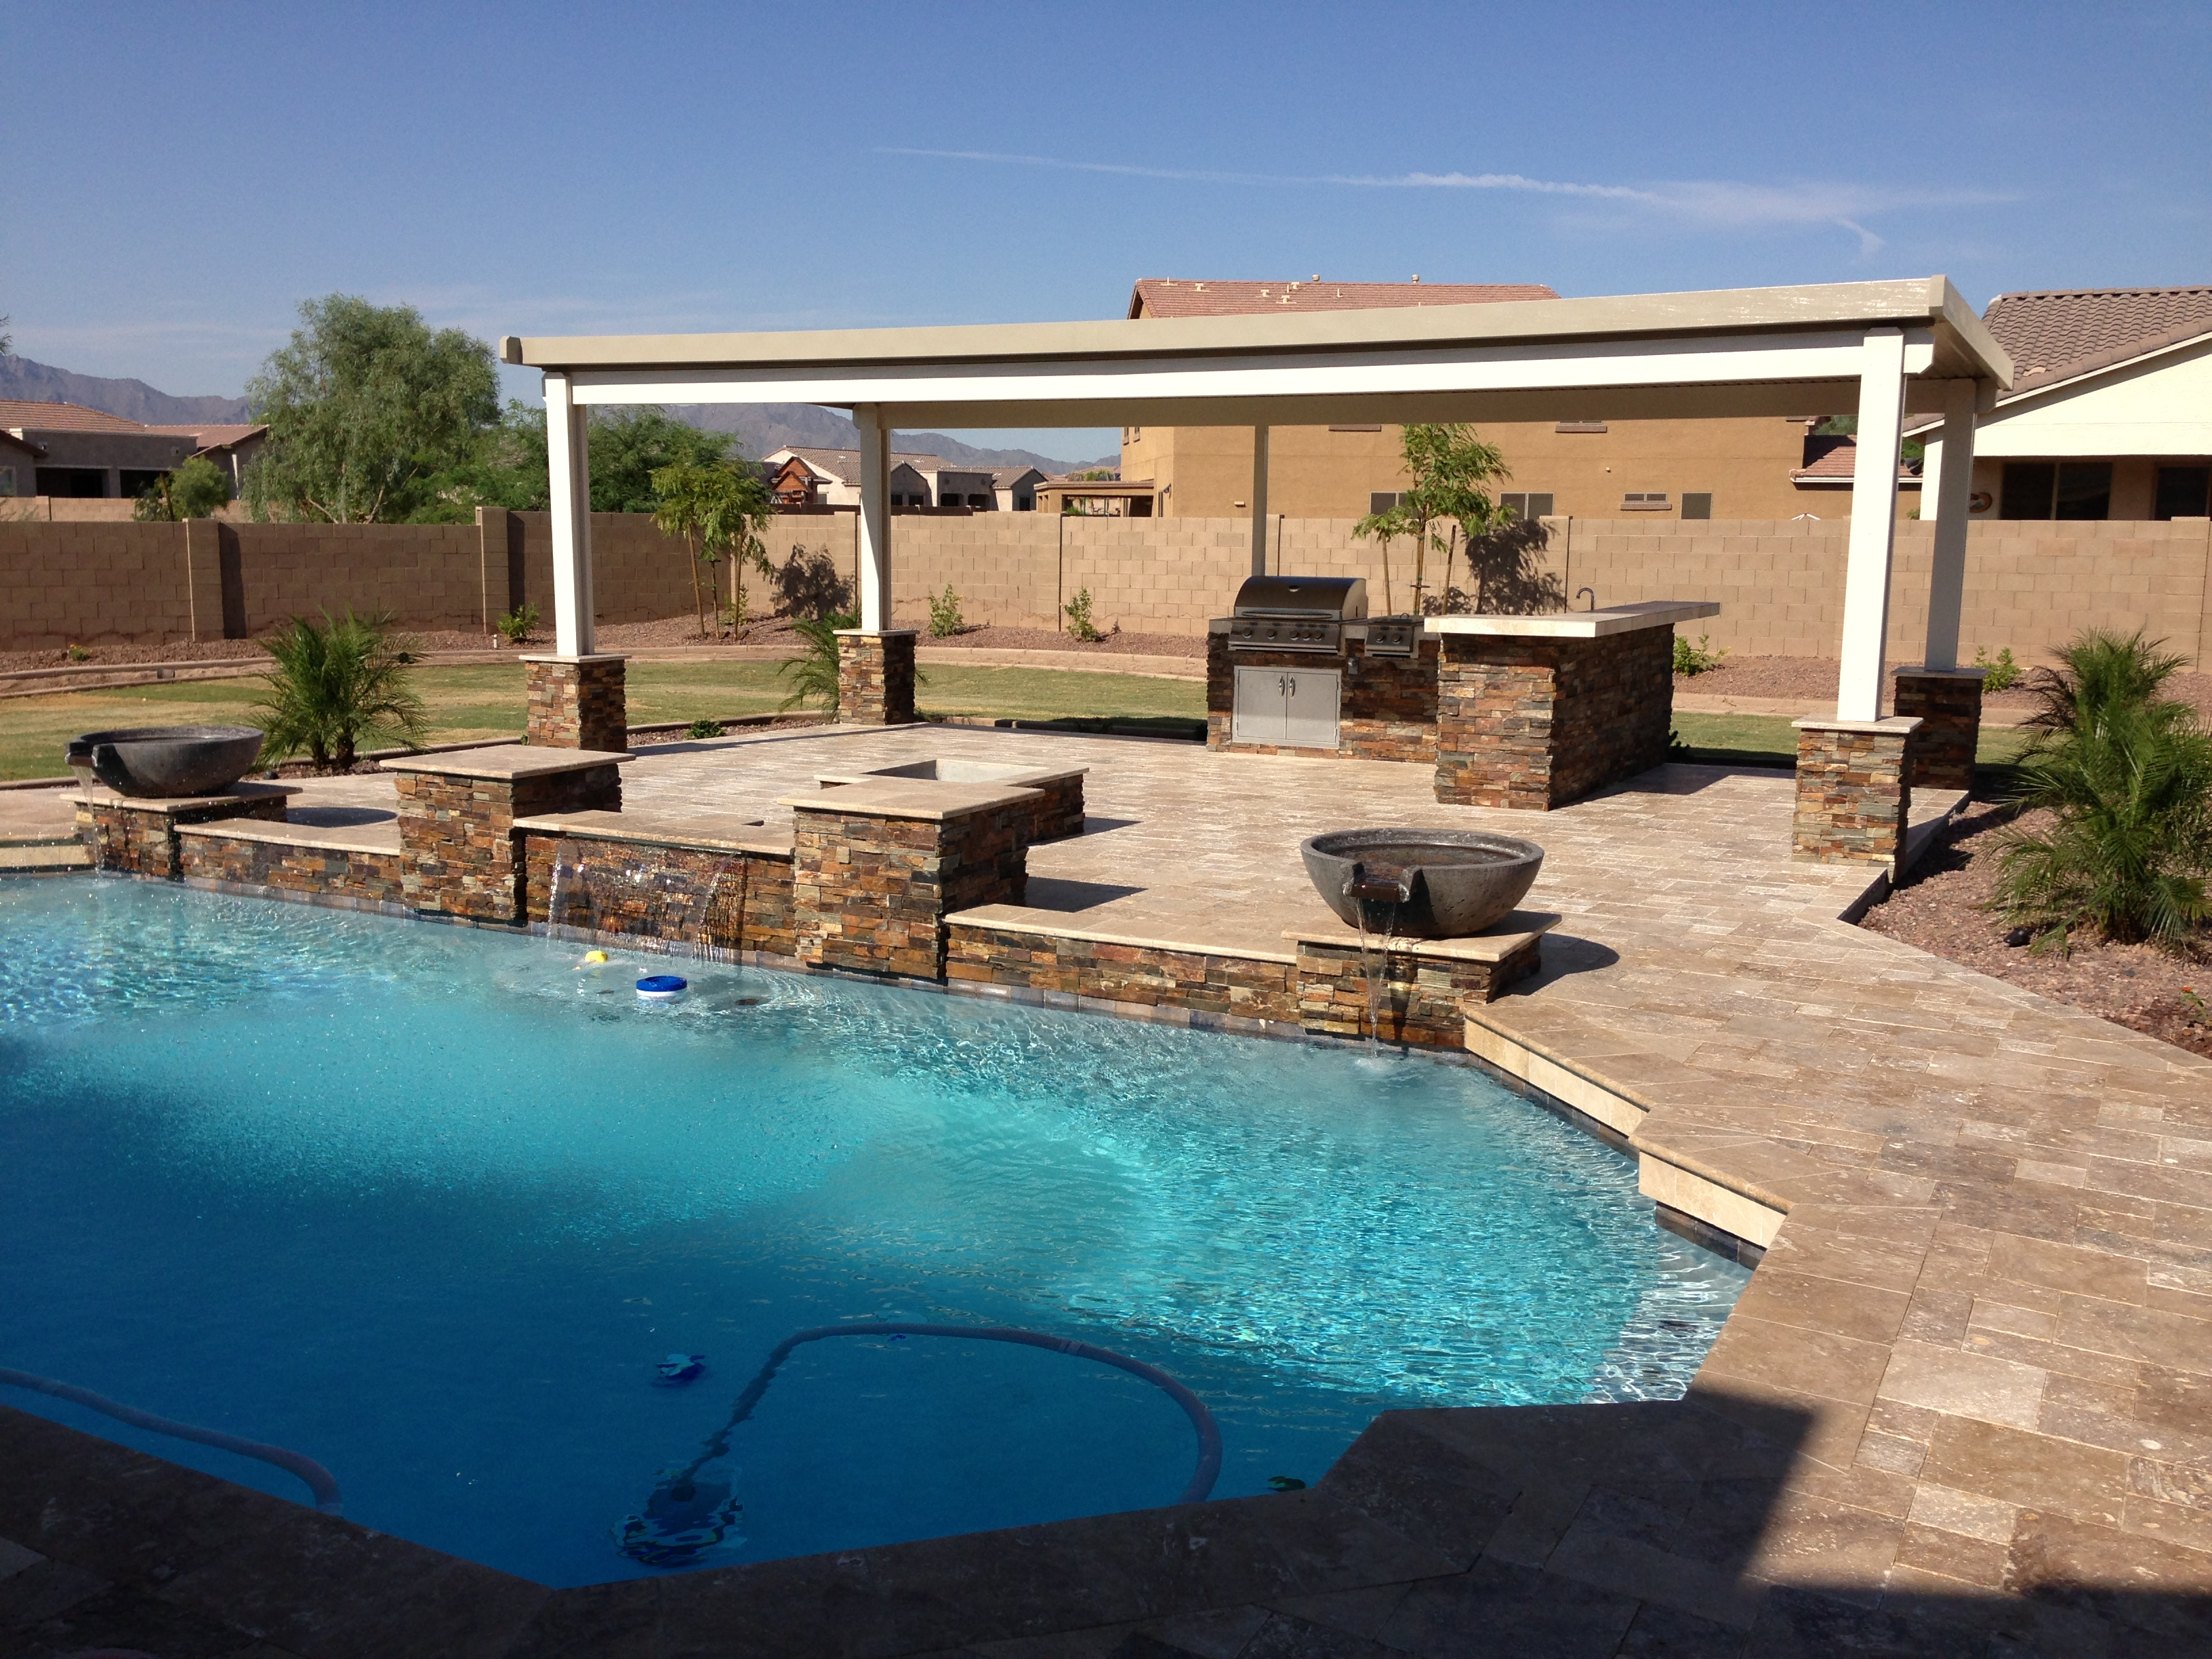 Fullsize Of Backyard Landscape Ideas With Pool